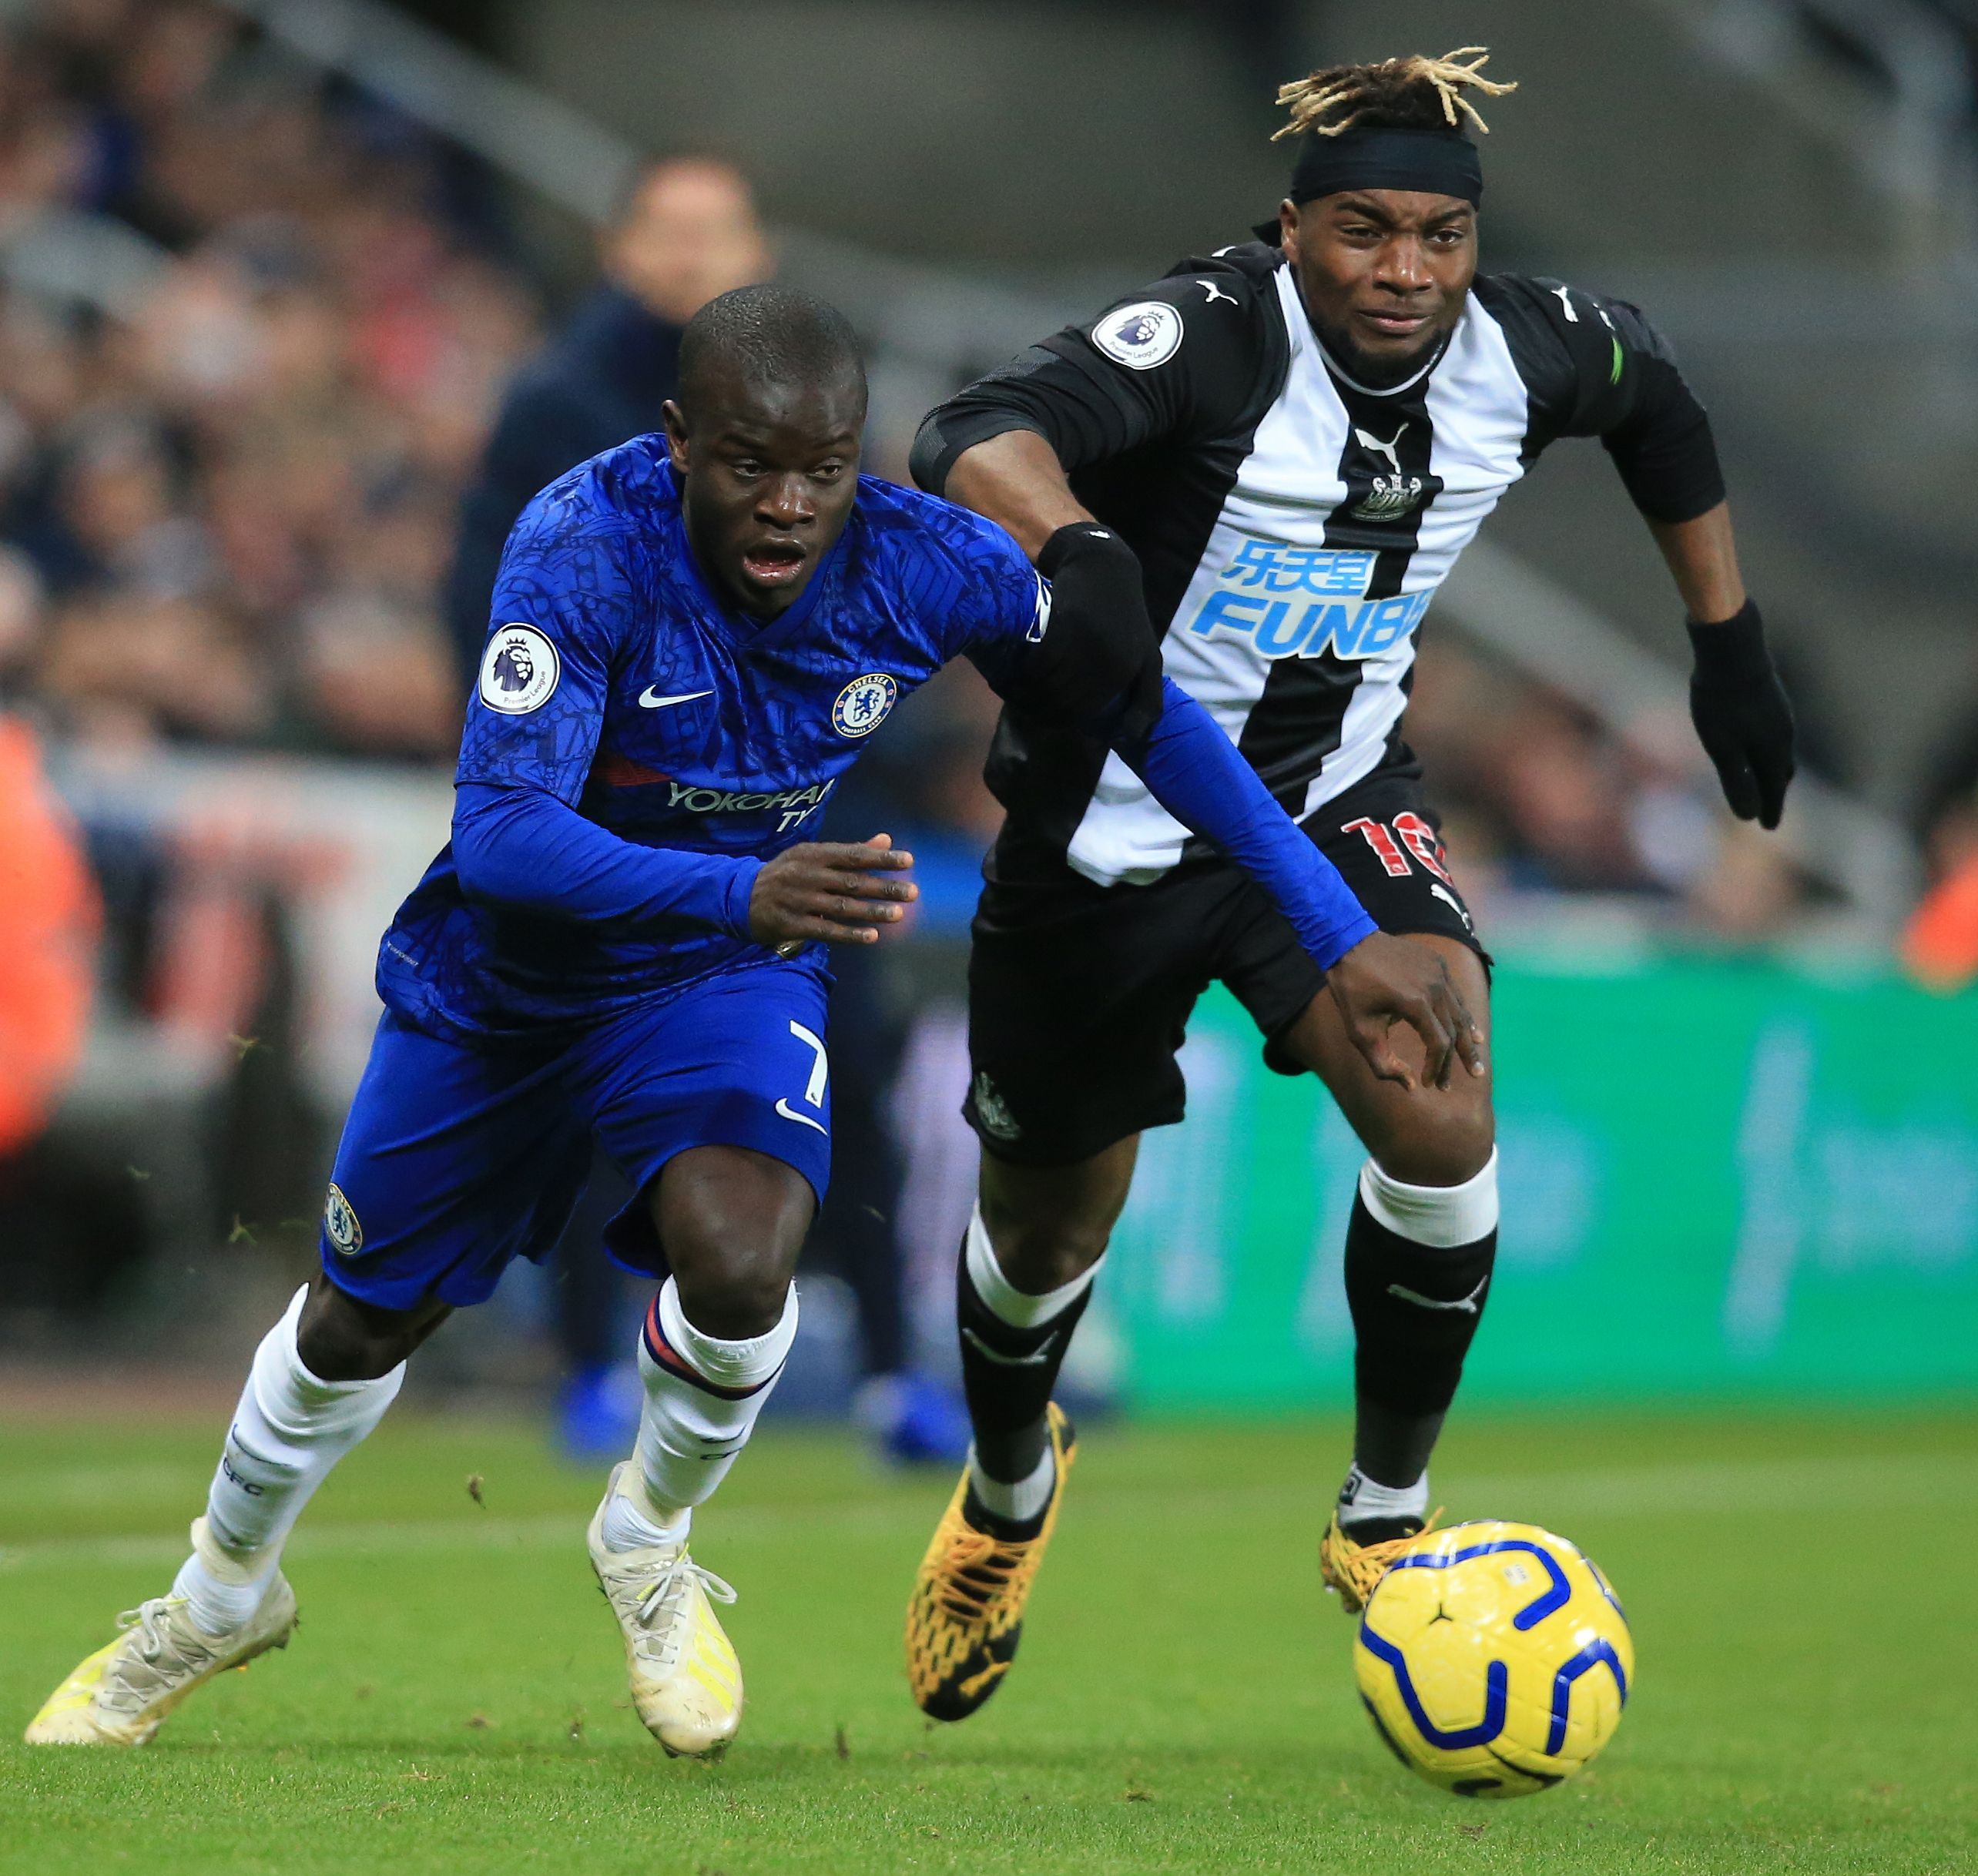 Allan Saint-Maximin will pose a major threat to the Leeds defence (Picture Courtesy - AFP/Getty Images)